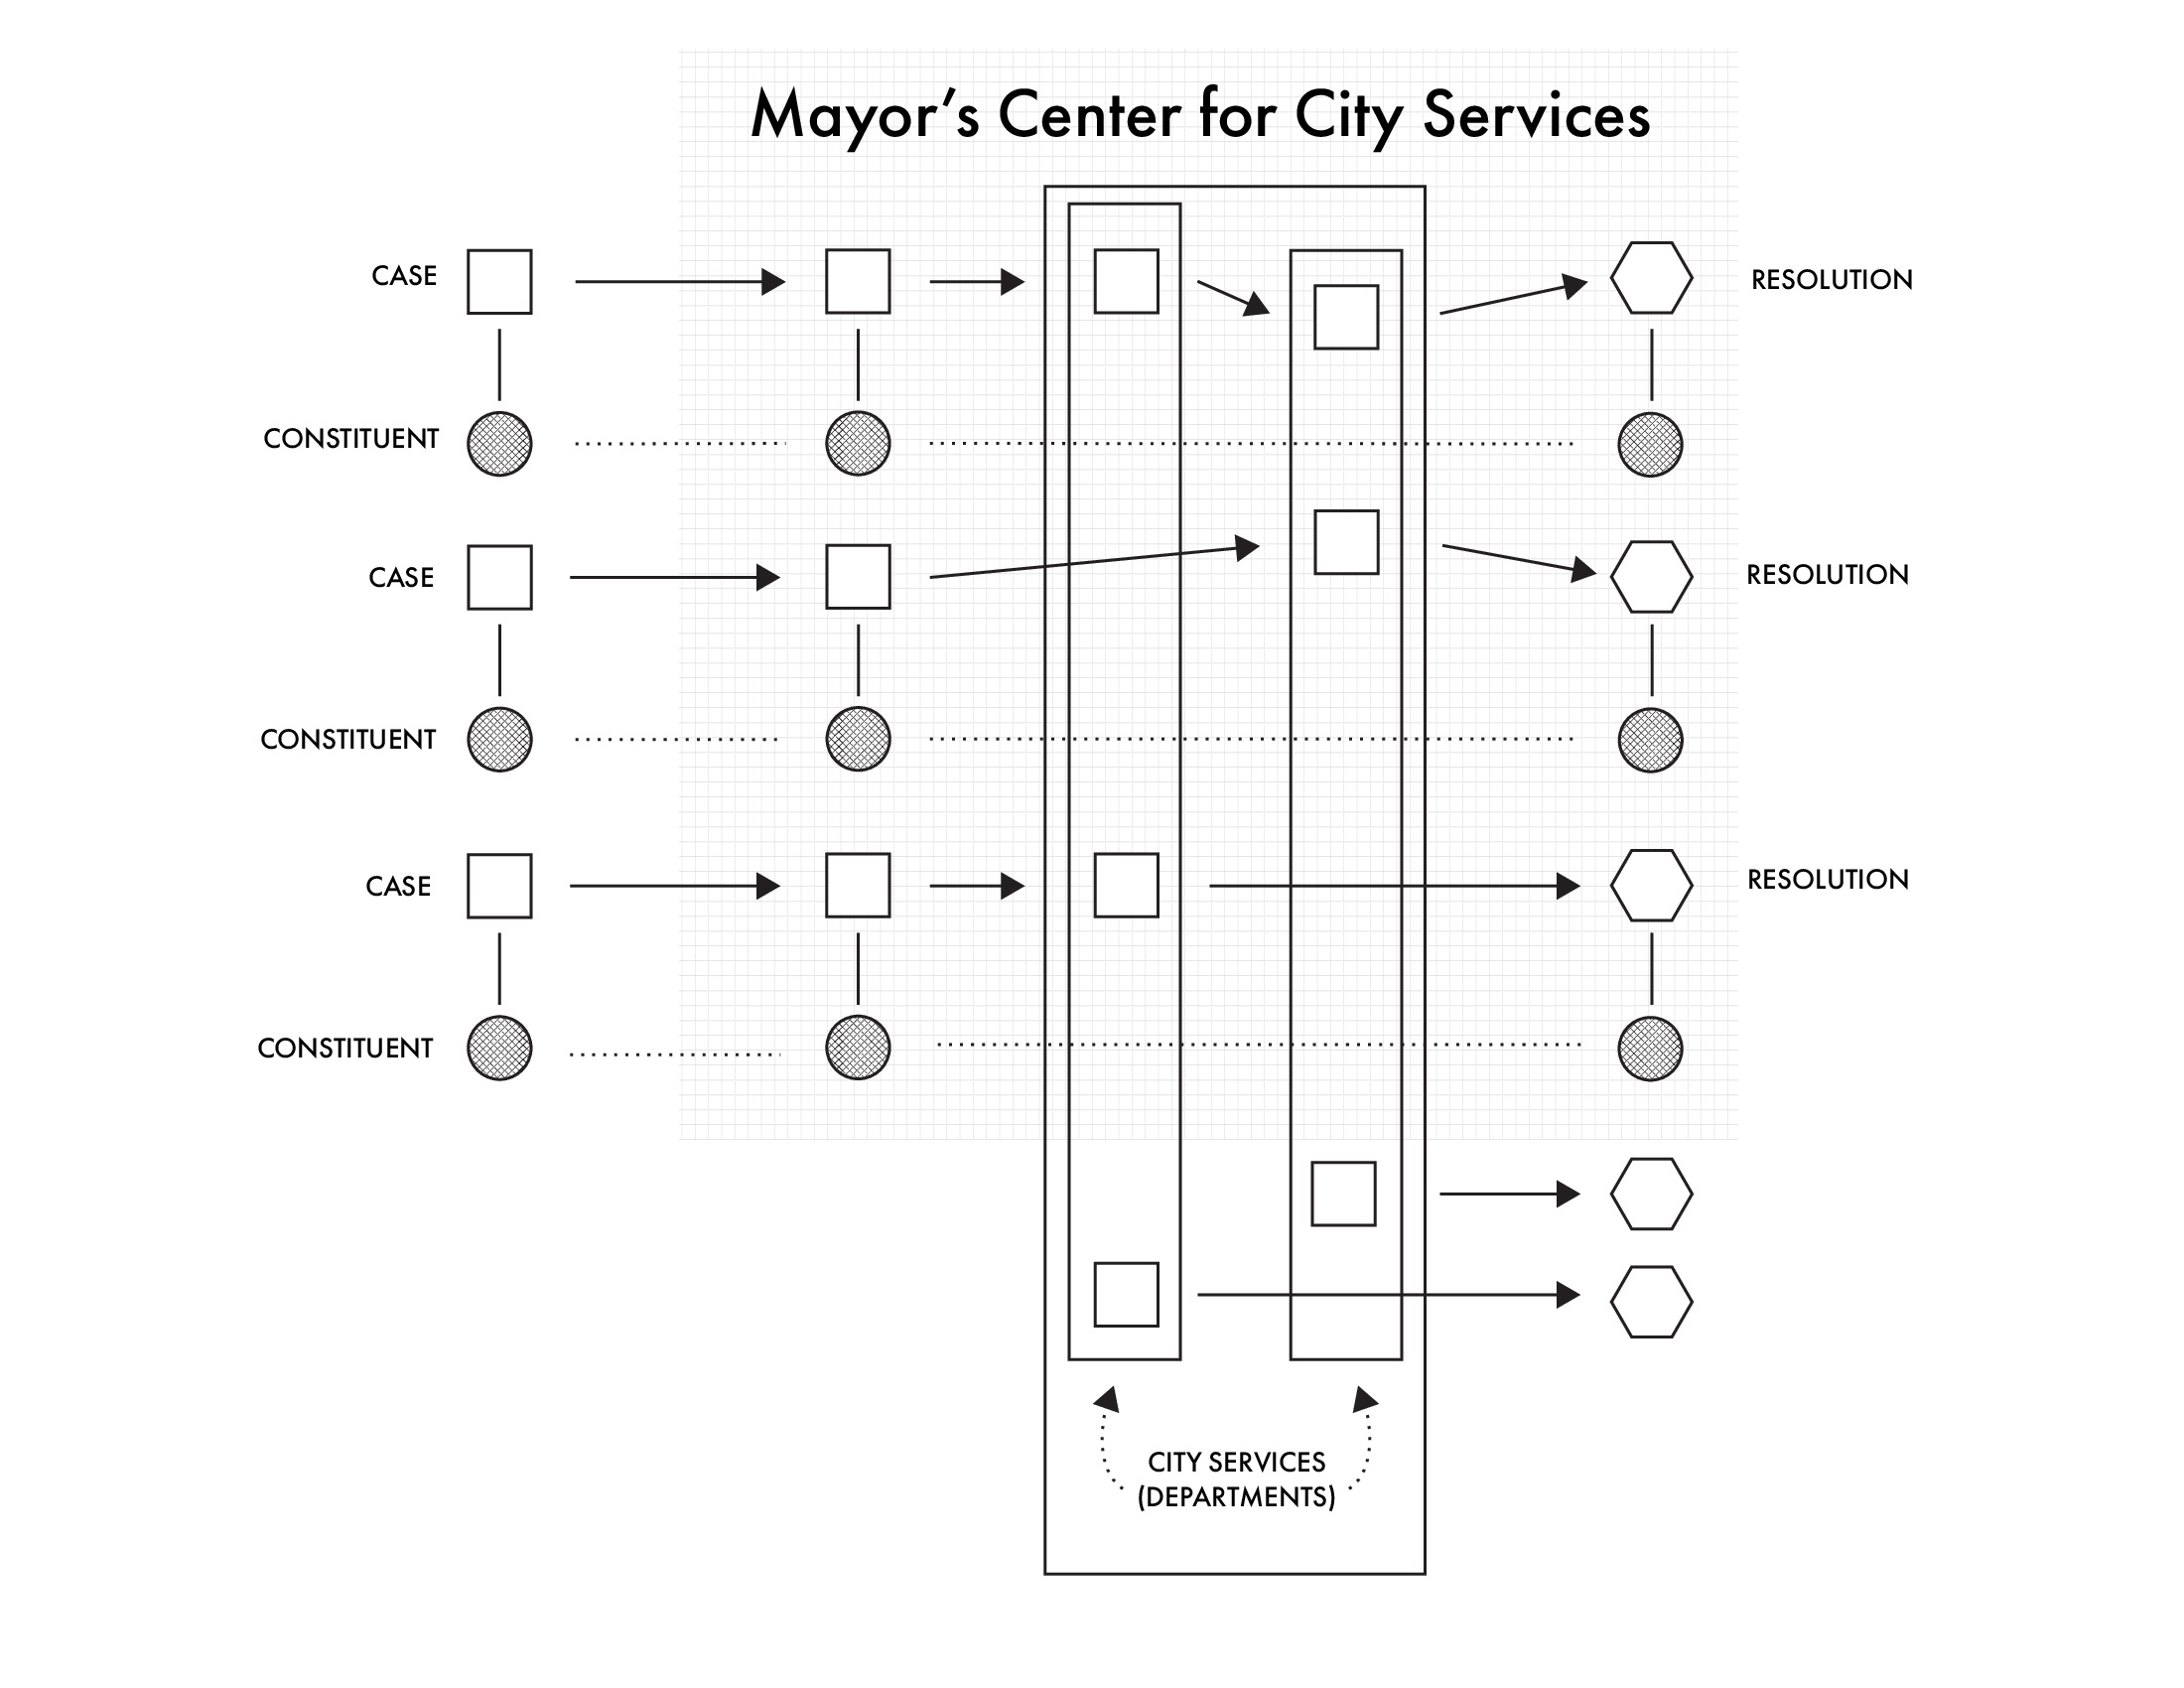 system map of the 311 service as constituent records an issue and it is transferred through the departments for resolution, the mediator being the Mayor's Center for City Services